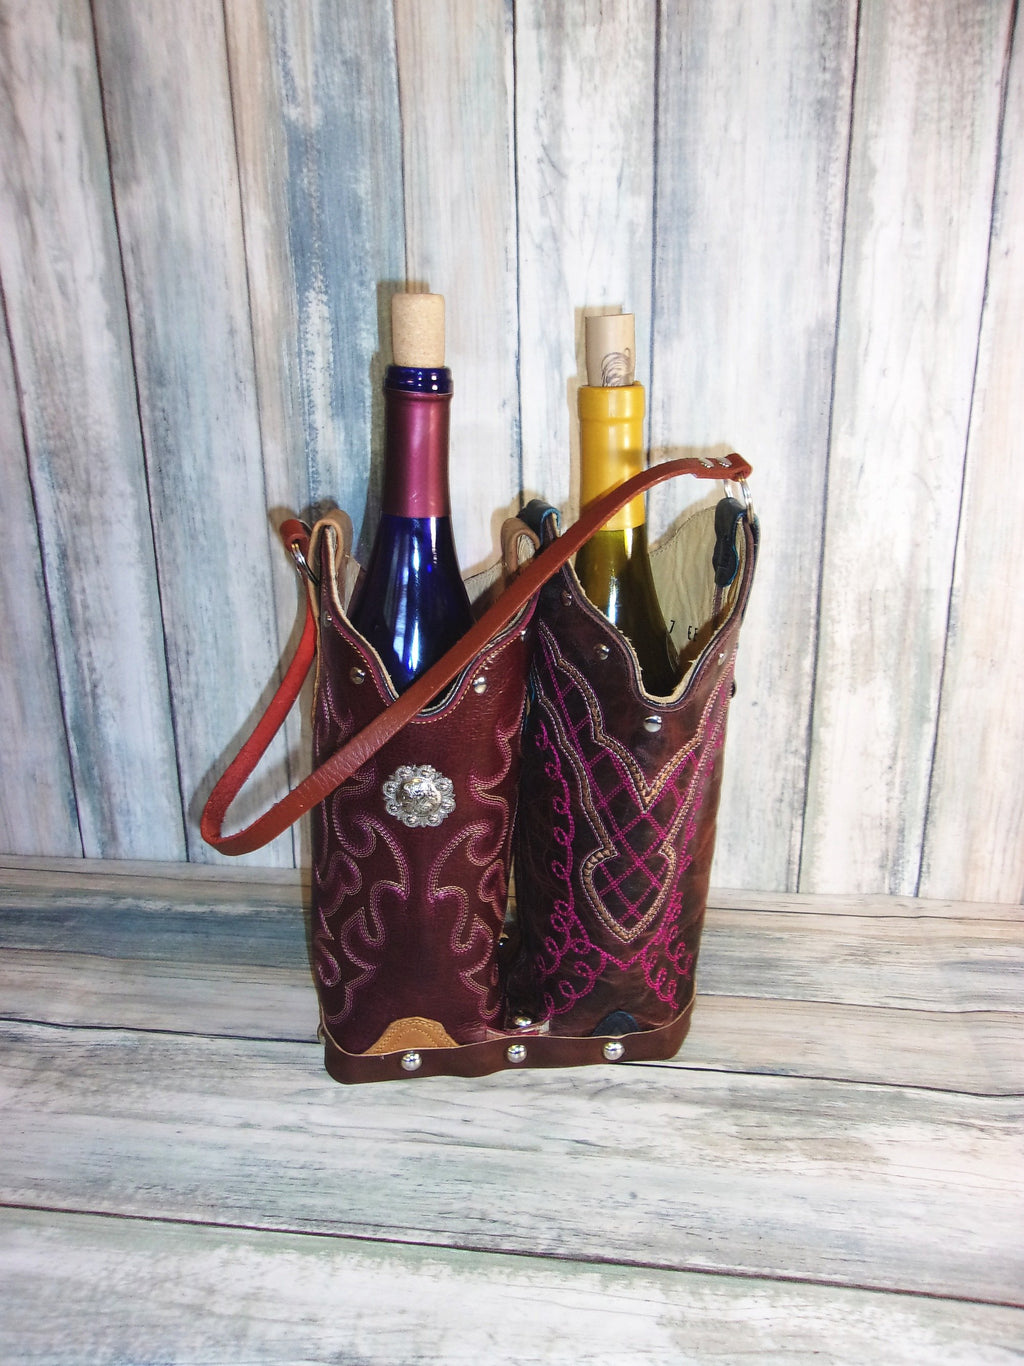 Double Wine Tote Bag - Leather Wine Carrier - Wine Lovers Gift – Wine Bag PP40 cowboy boot purses, western fringe purse, handmade leather purses, boot purse, handmade western purse, custom leather handbags Chris Thompson Bags